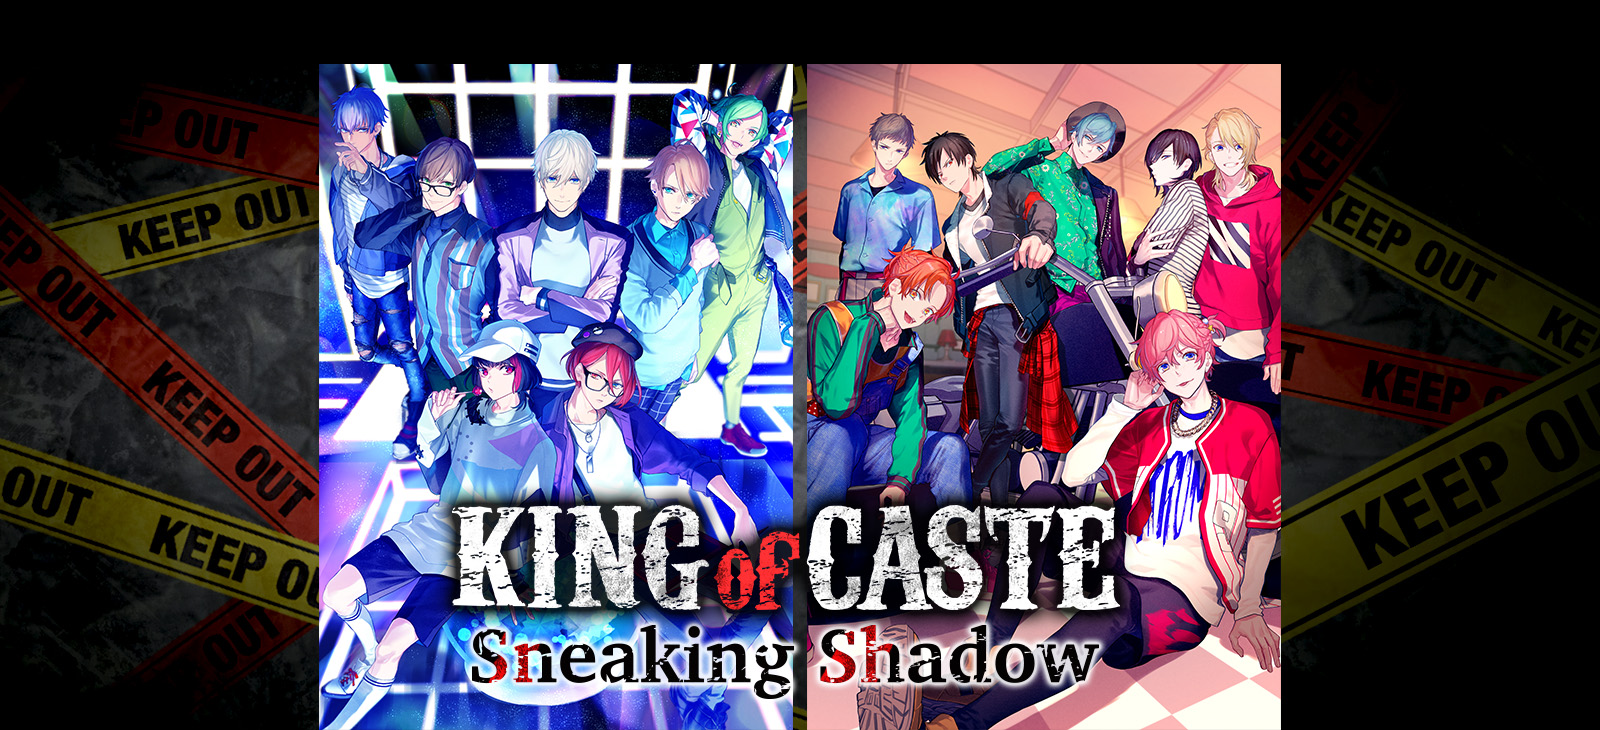 AGF2018 KING of CASTE 〜Sneaking Shadow〜 Banner